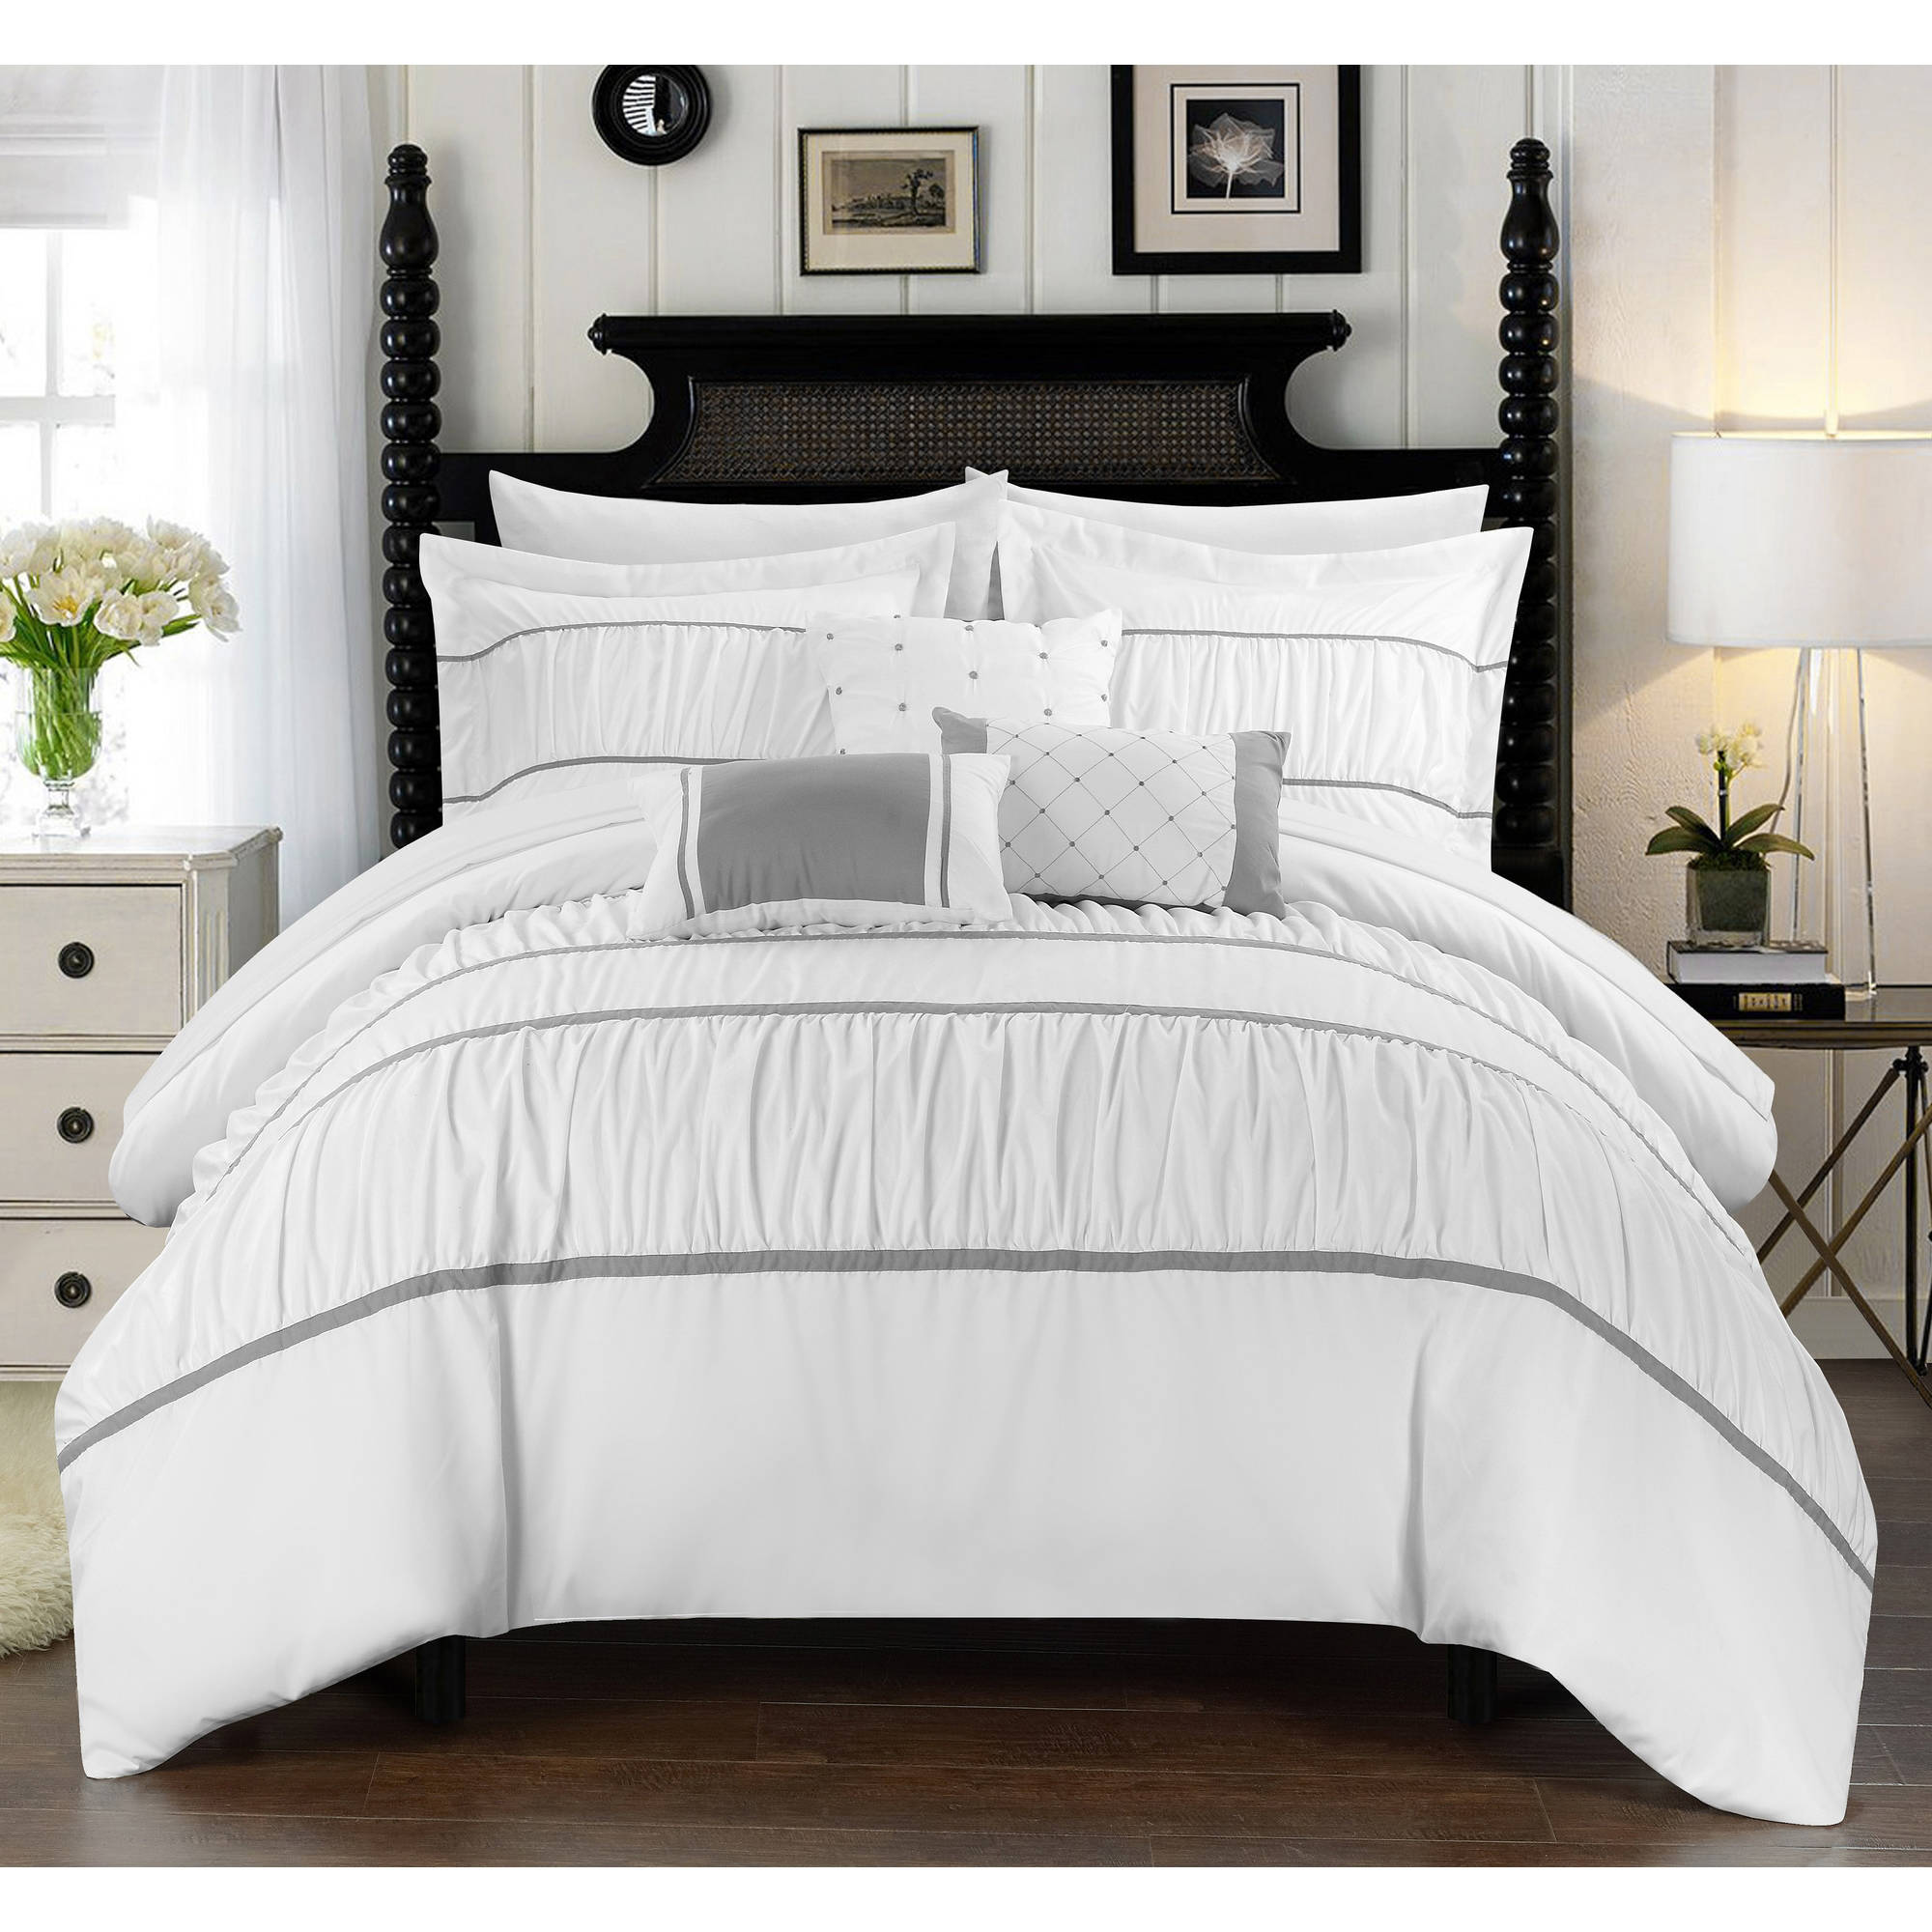 Chic home wanda 10 piece bed in a bag comforter set walmart com